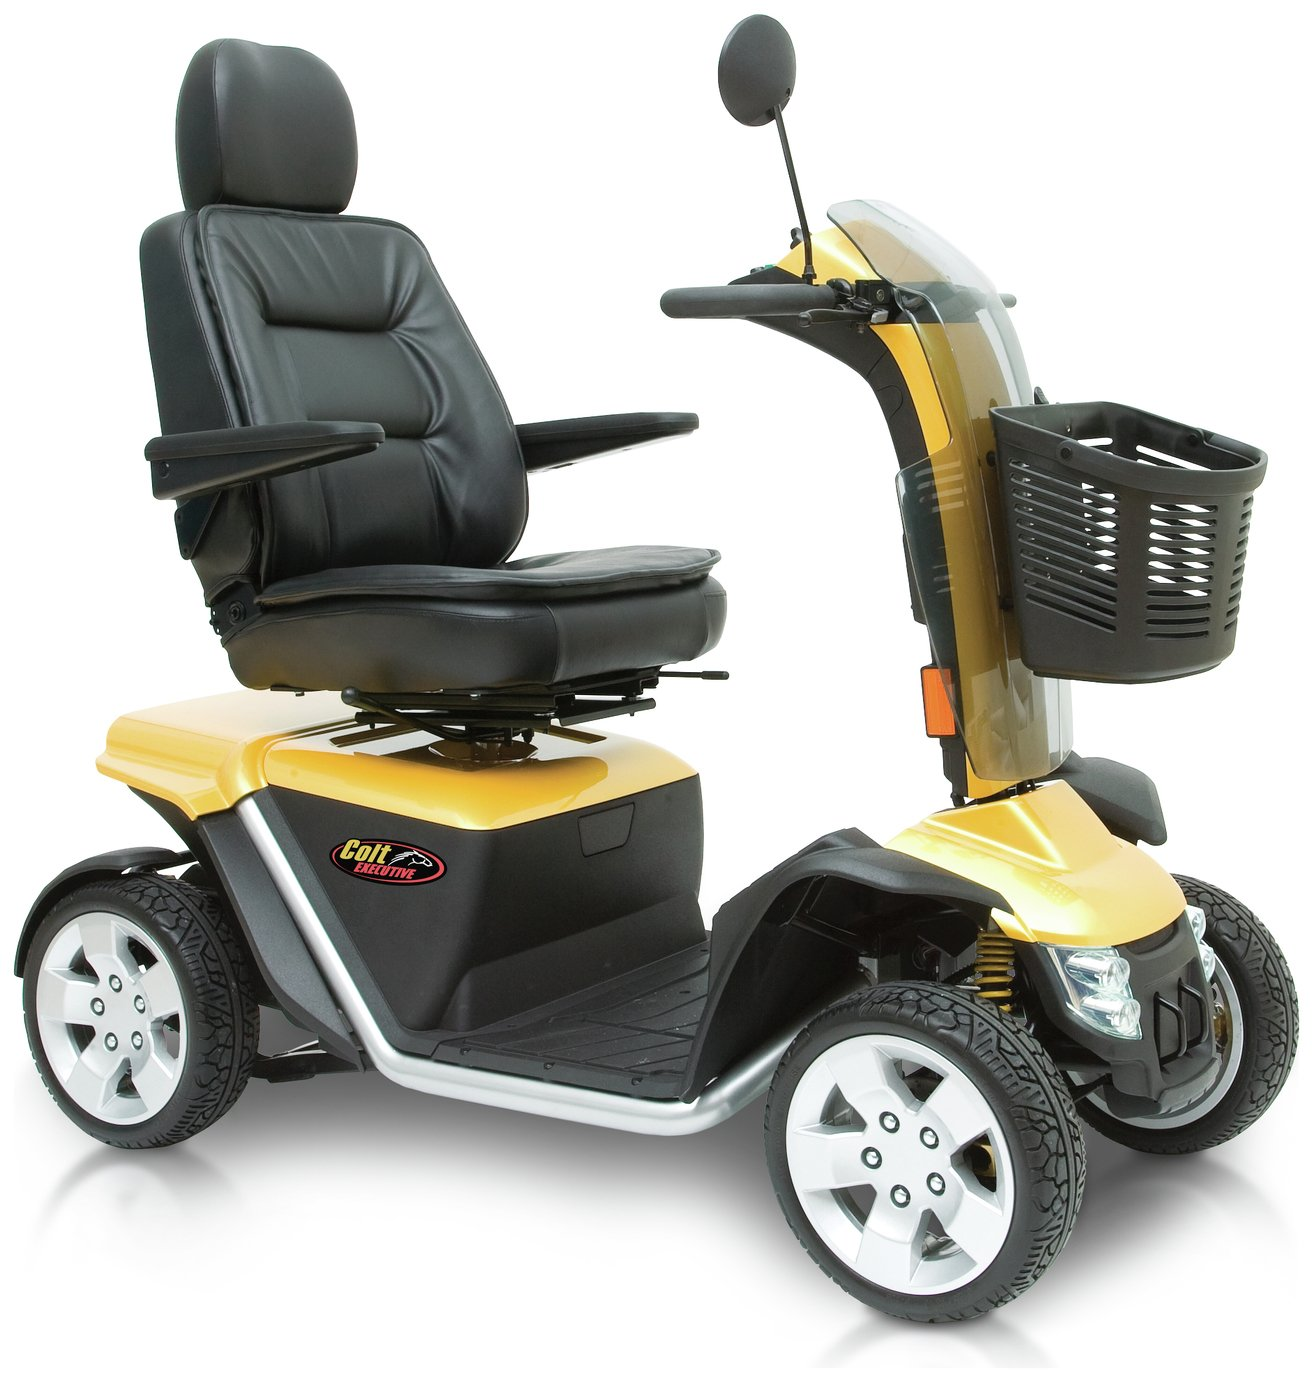 Pride Mobility Colt Executive Power Scooter - Gold